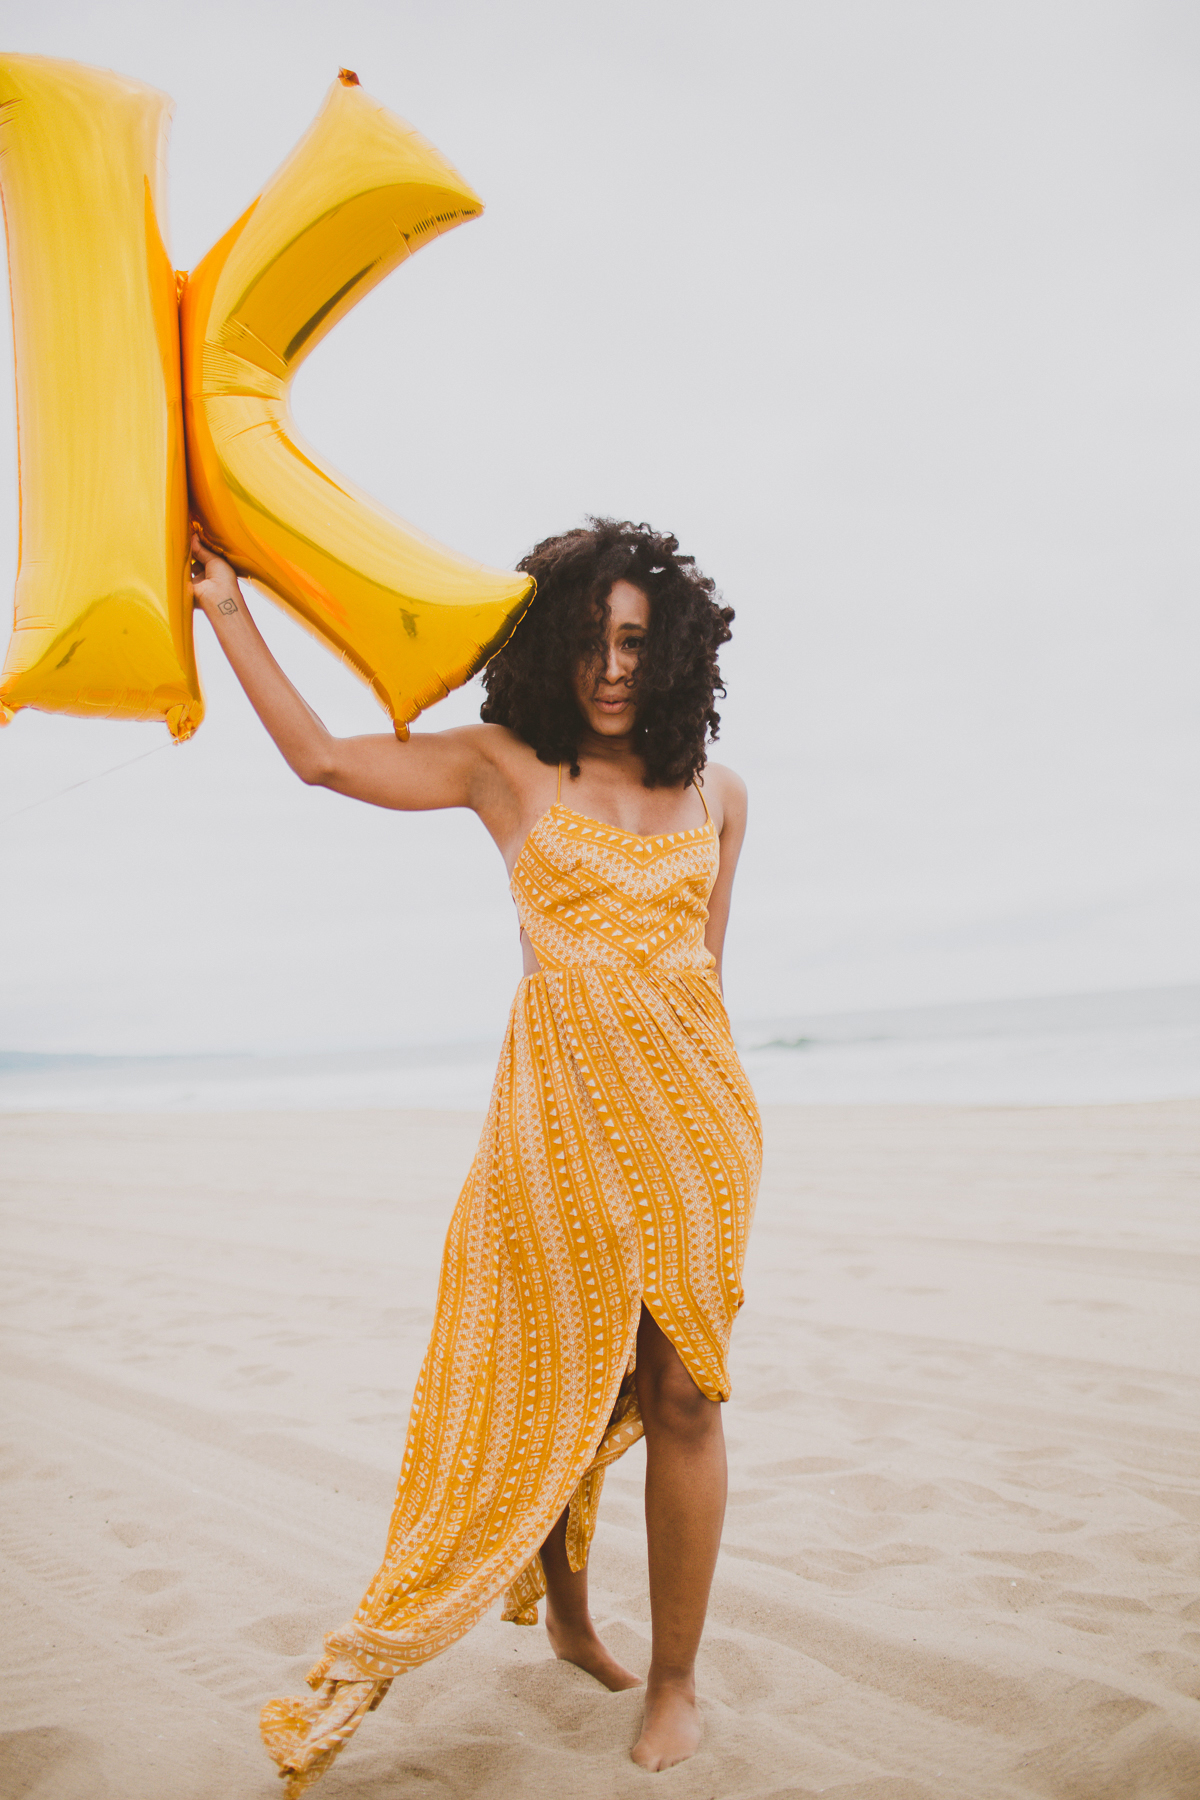 manhattan-beach-yellow-maxi-birthday-shoot-kelley-raye-los-angeles-atlanta-branding-photographer-15.jpg